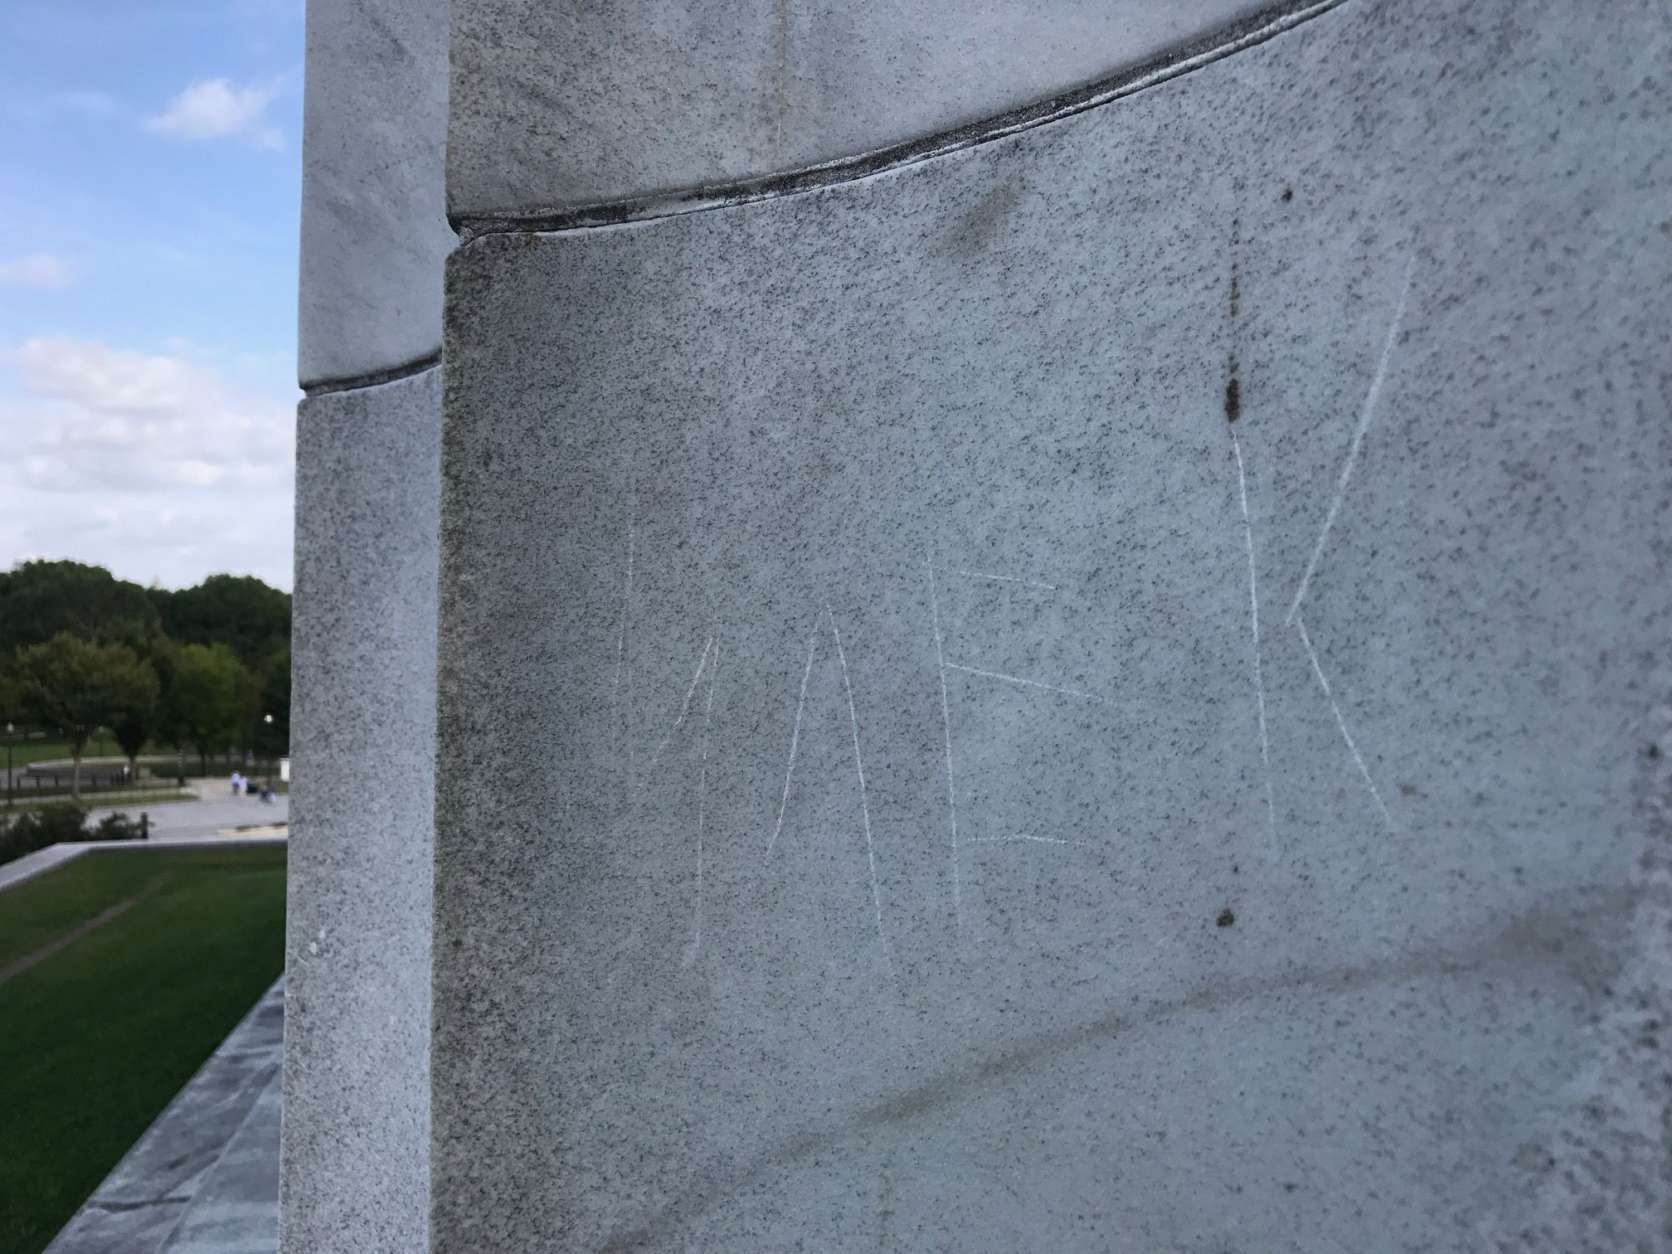 """The letters """"MAEK"""" are seen carved into the side of the Lincoln Memorial Tuesday. A man from the Kyrgyz Republic was arrested Monday on charges of defacing the Lincoln Memorial. National Park officials said the penny he used to etch letters into a stone pillar caused permanent damage. (WTOP/Megan Cloherty)"""